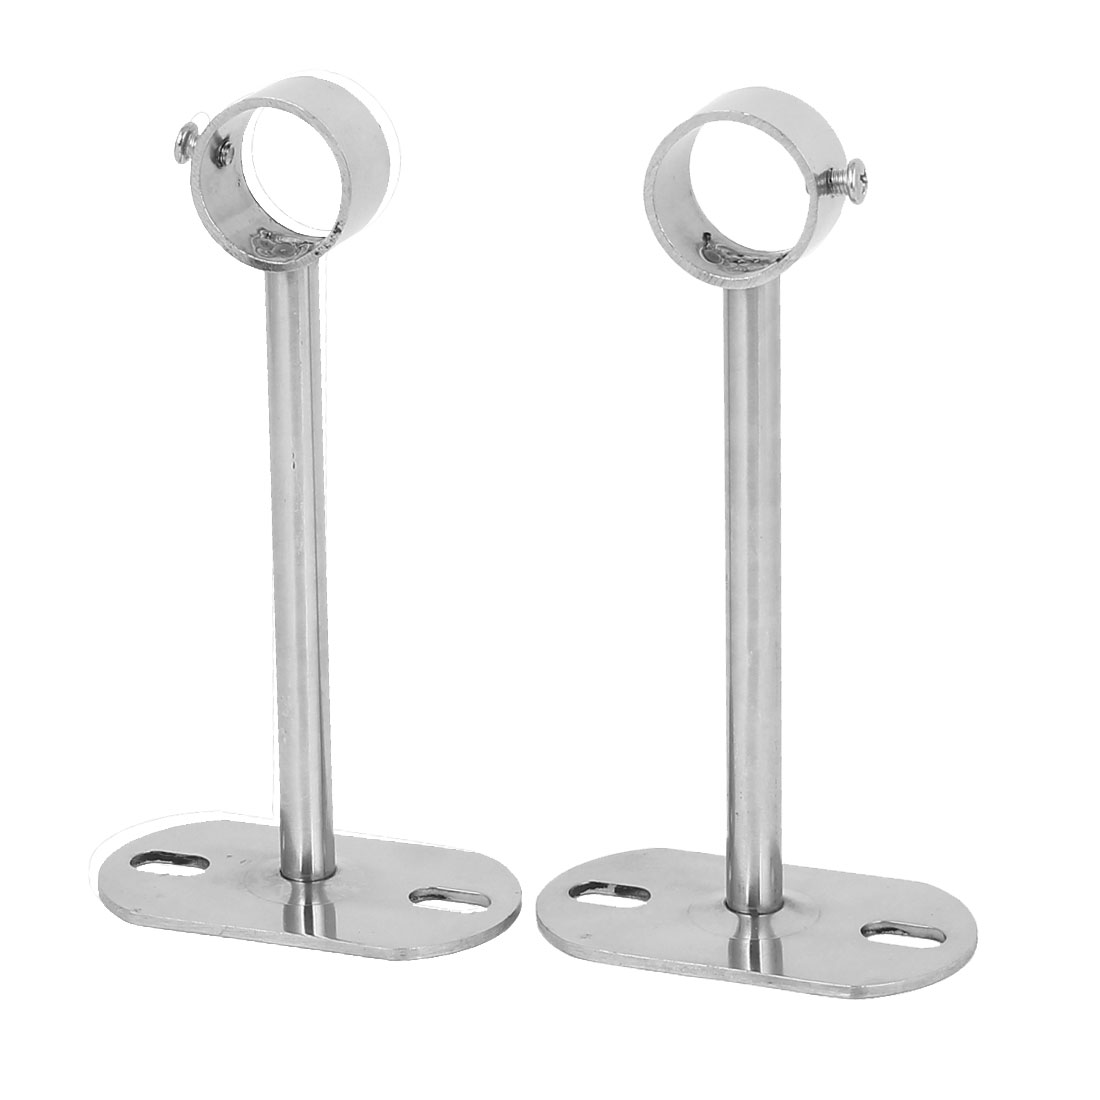 150mm Length 25mm Dia Pipe Rod Clothes Lever Bracket Support Silver Tone 2pcs